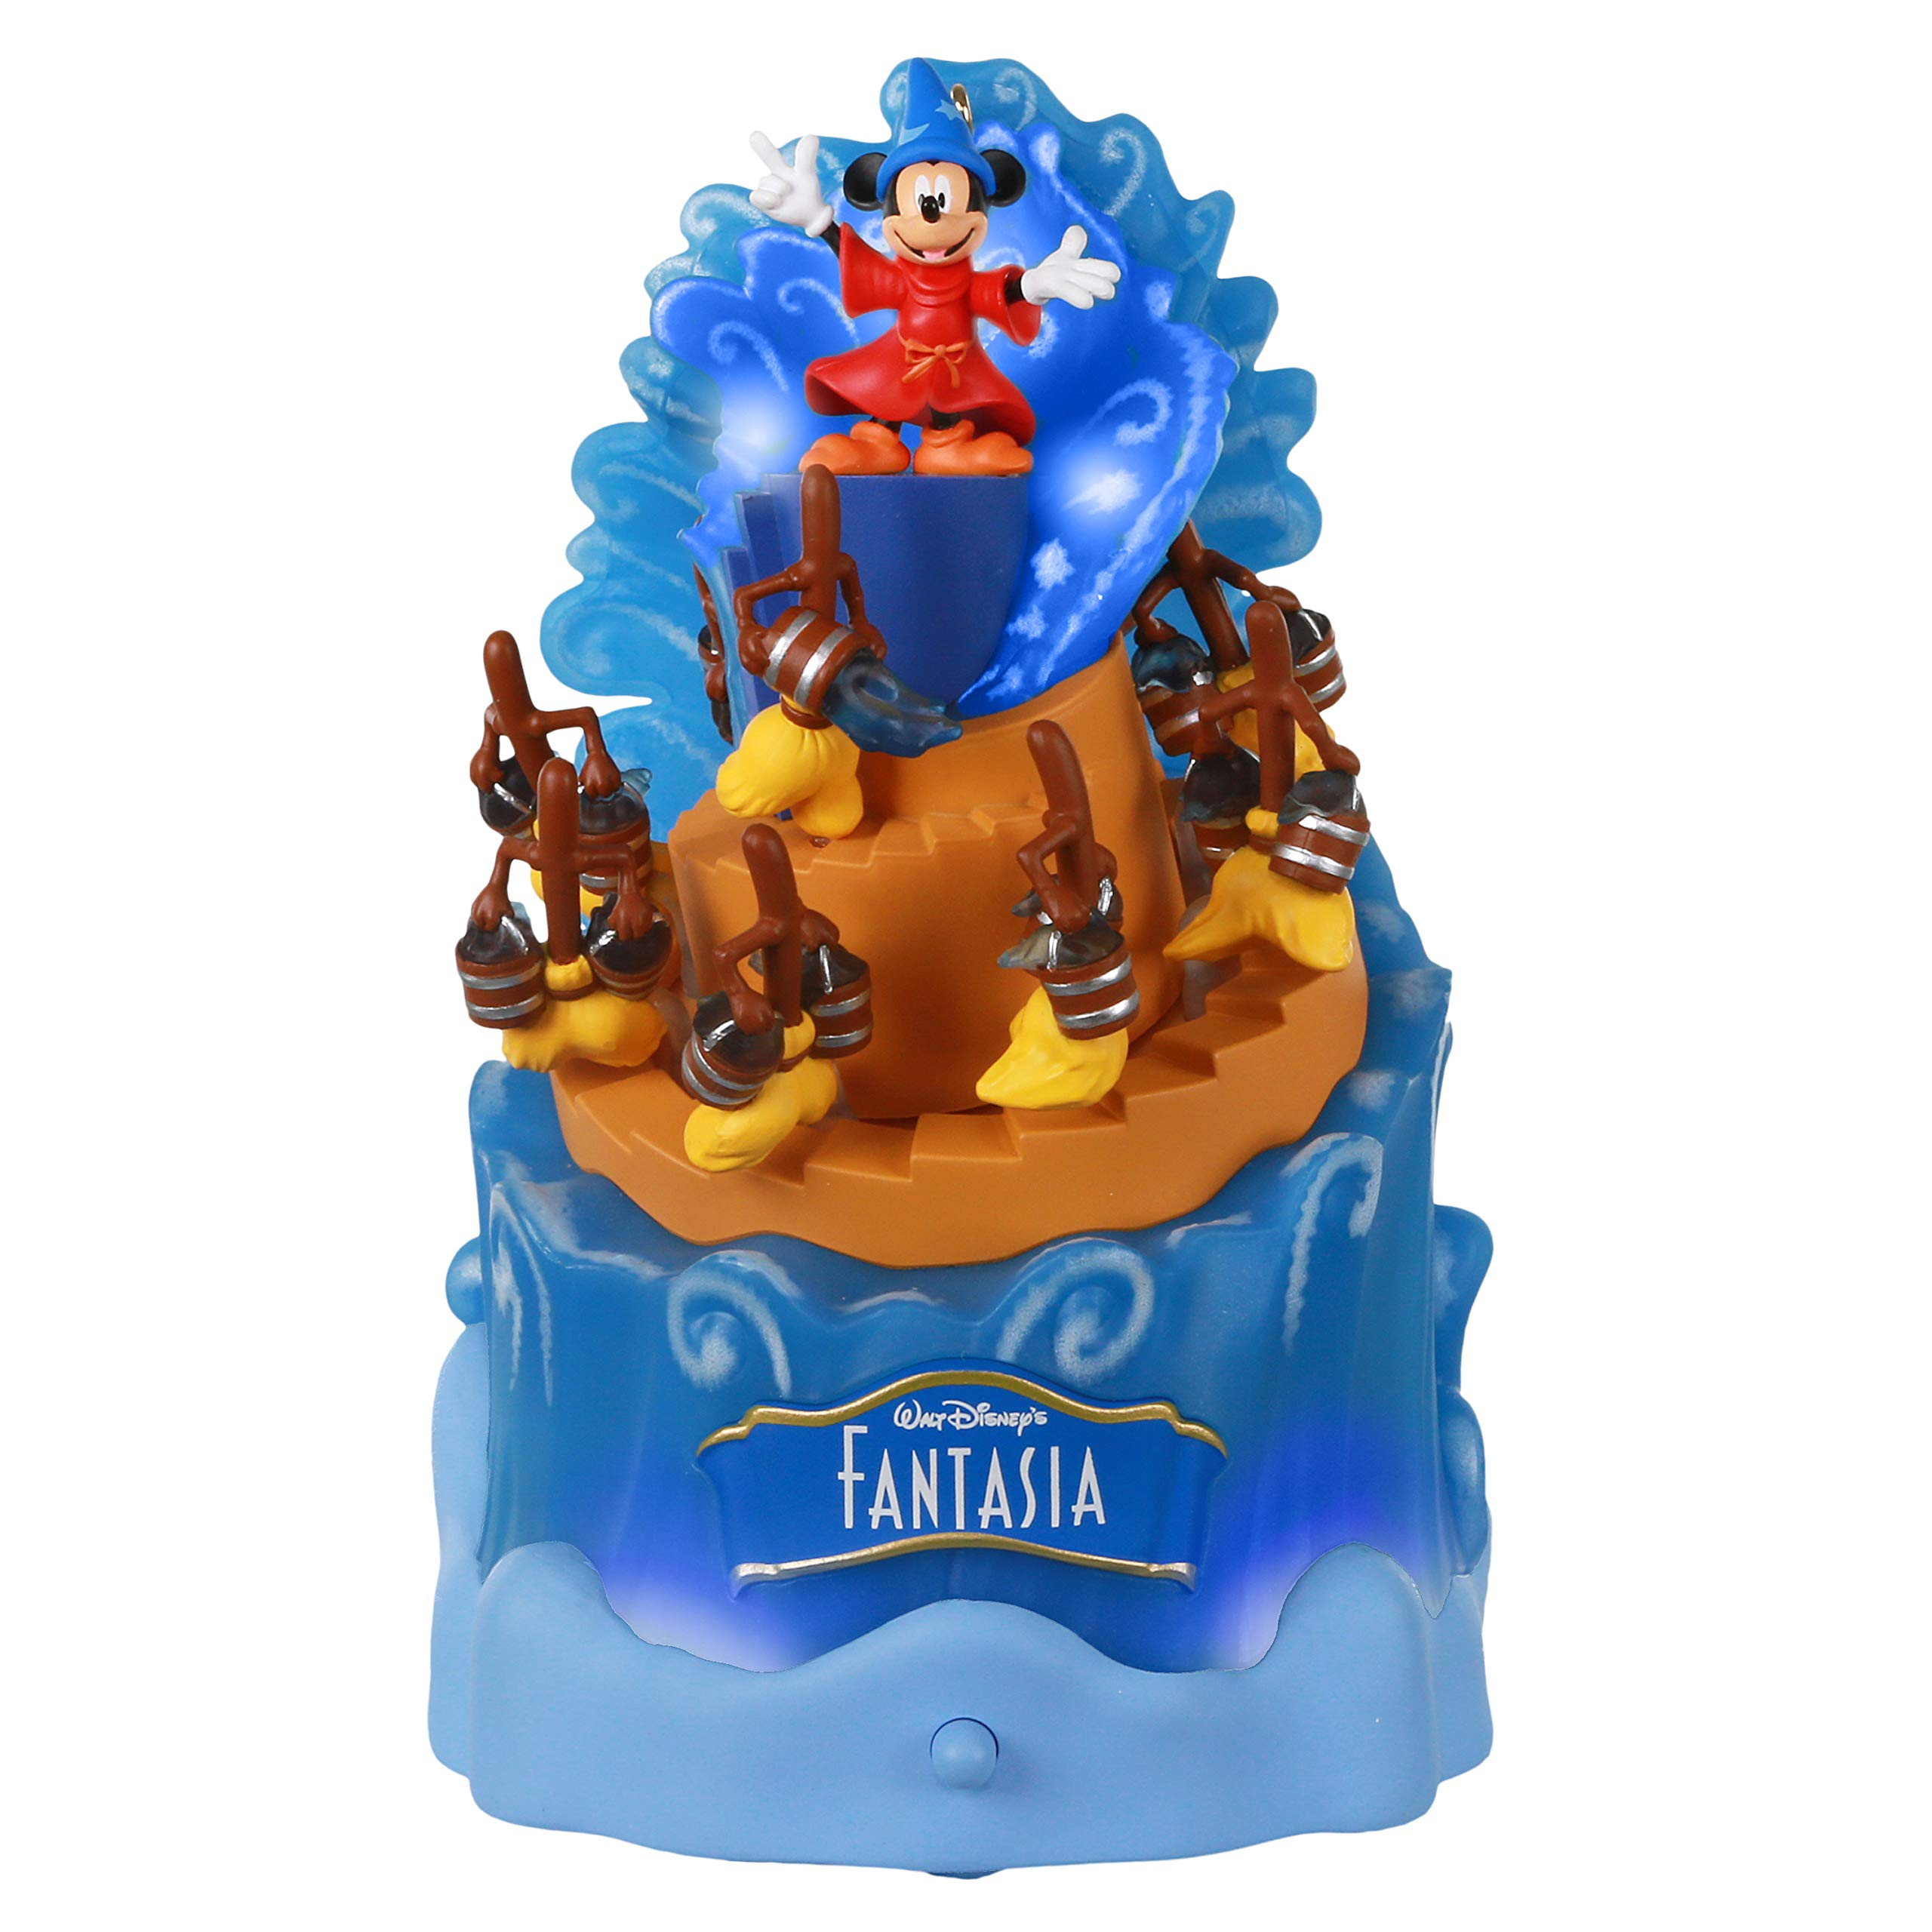 Hallmark Keepsake Christmas Ornament 2020, Disney Fantasia 80th Anniversary, Sorcerer Mickey Mouse, Musical With Light and Motion